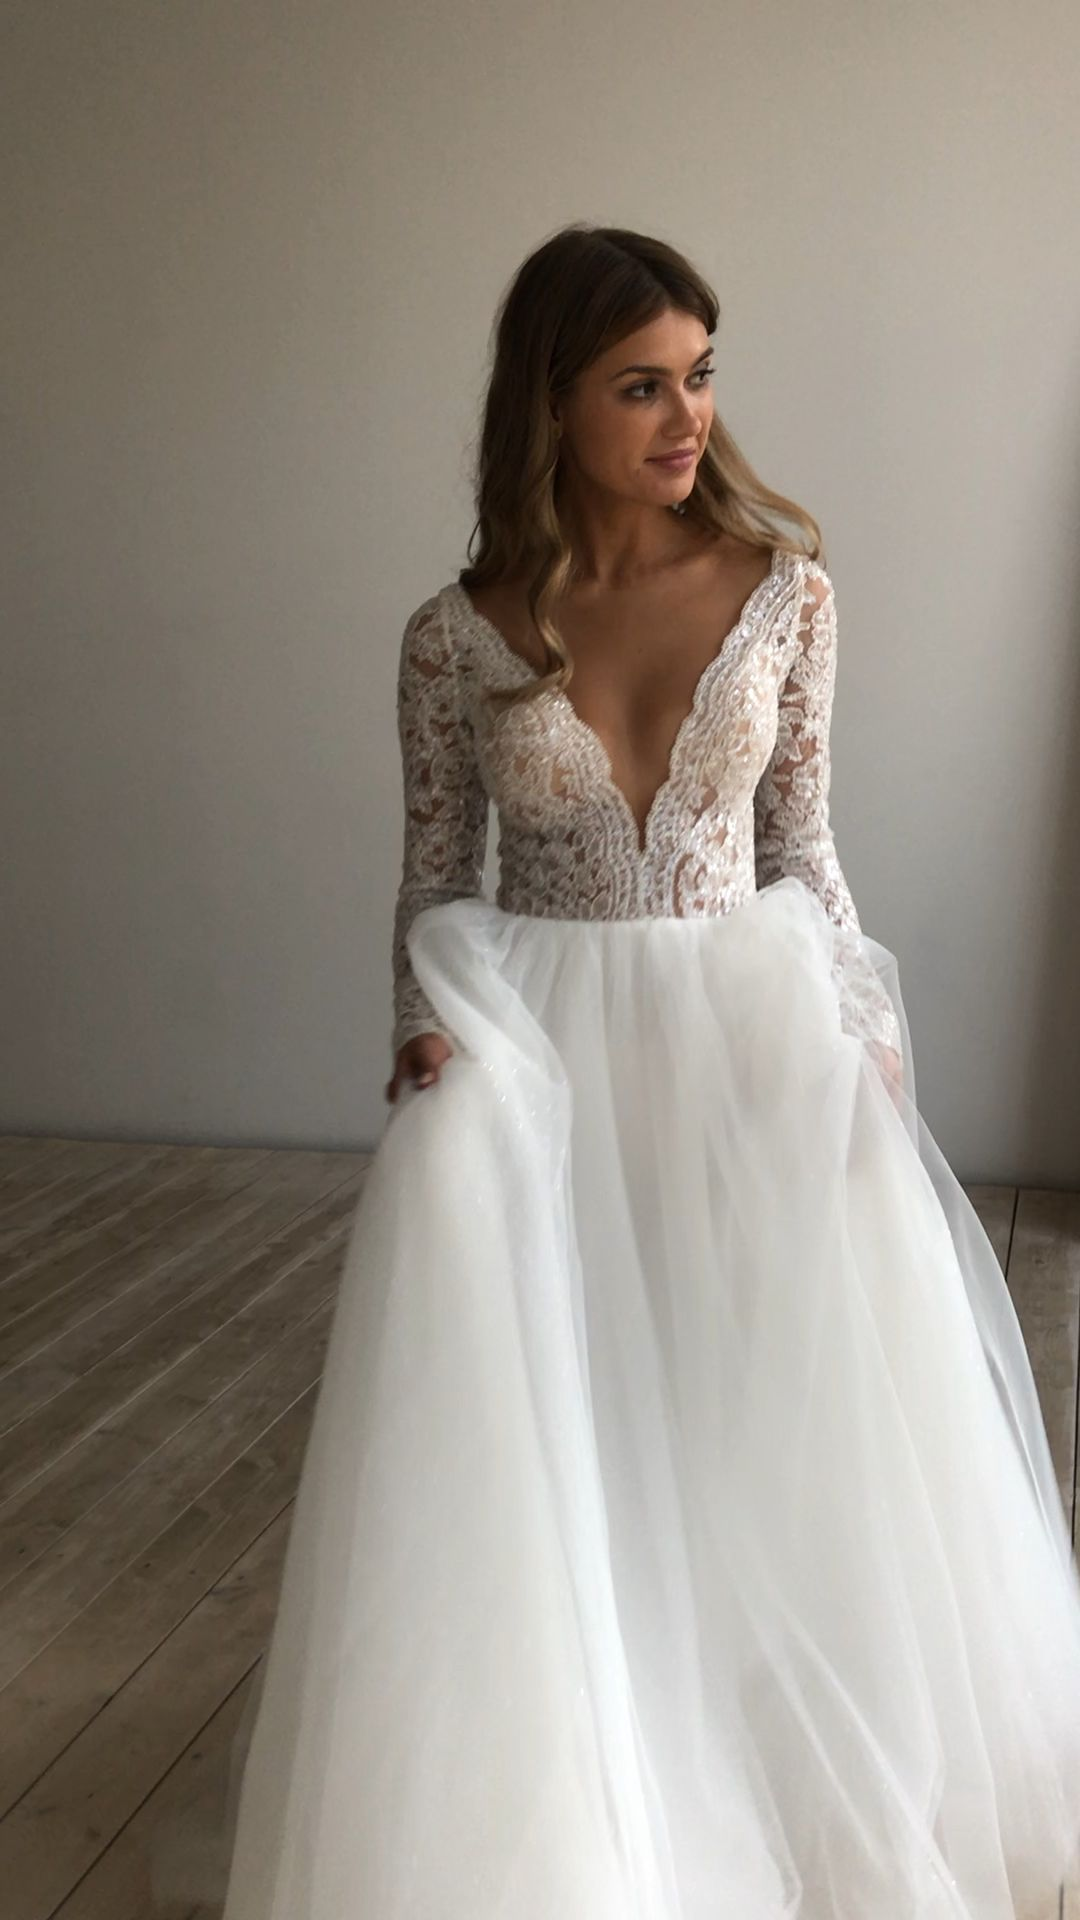 Wedding Dresses Wedding Gowns 2020 Plus Size Off The Shoulder Dress Pe Queewwn